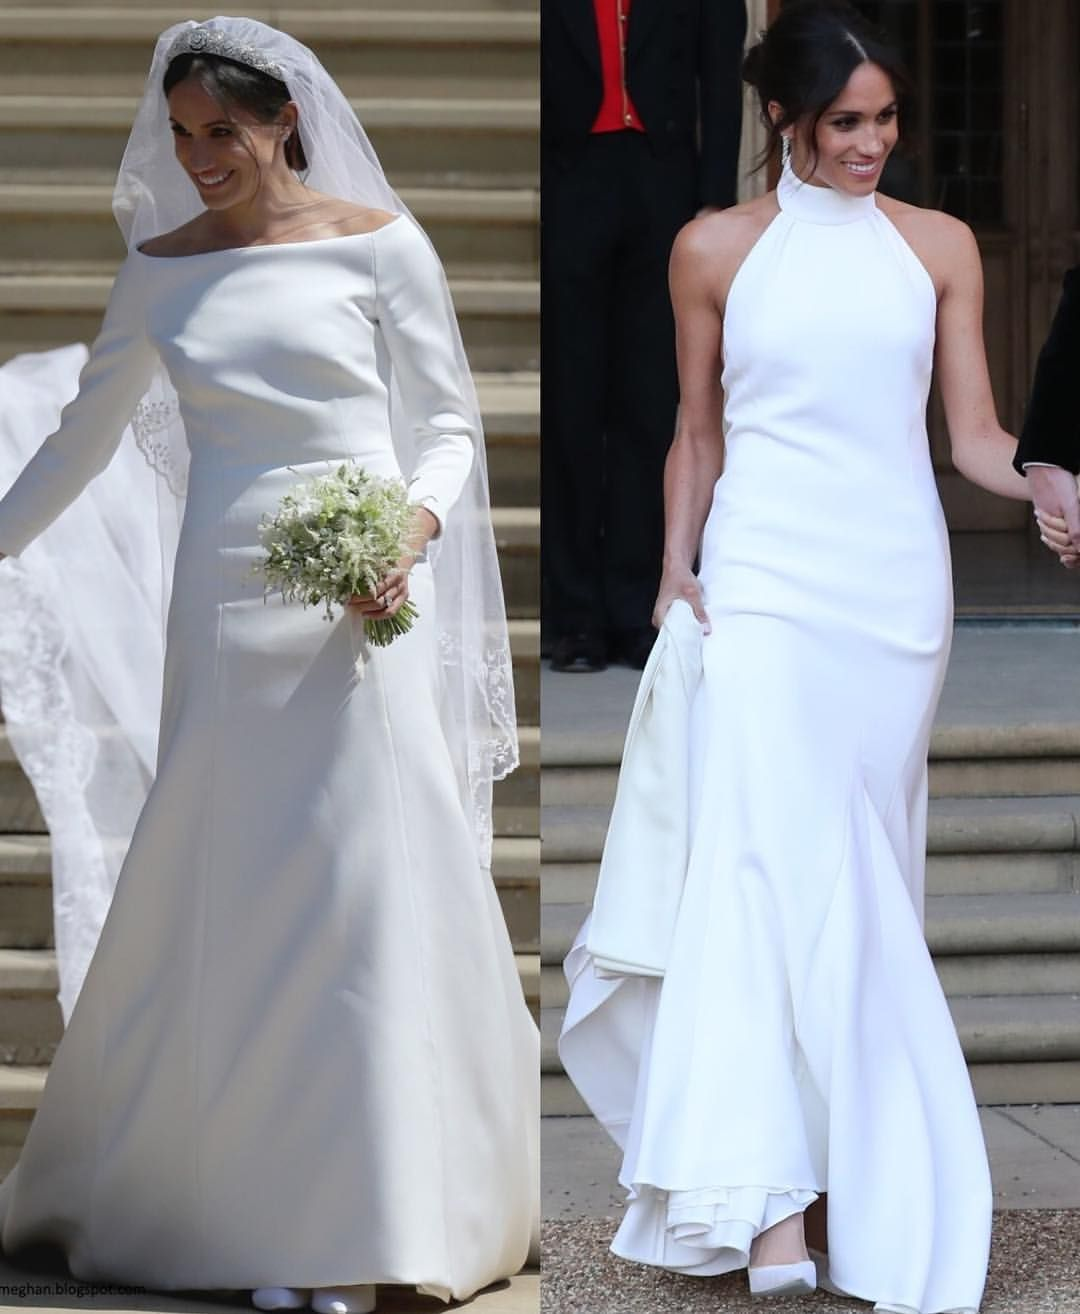 New Prince Harry And Meghan Markle S Wedding 19th May First Dress By Givenchy A Meghan Markle Wedding Dress Second Wedding Dresses Meghan Markle Wedding